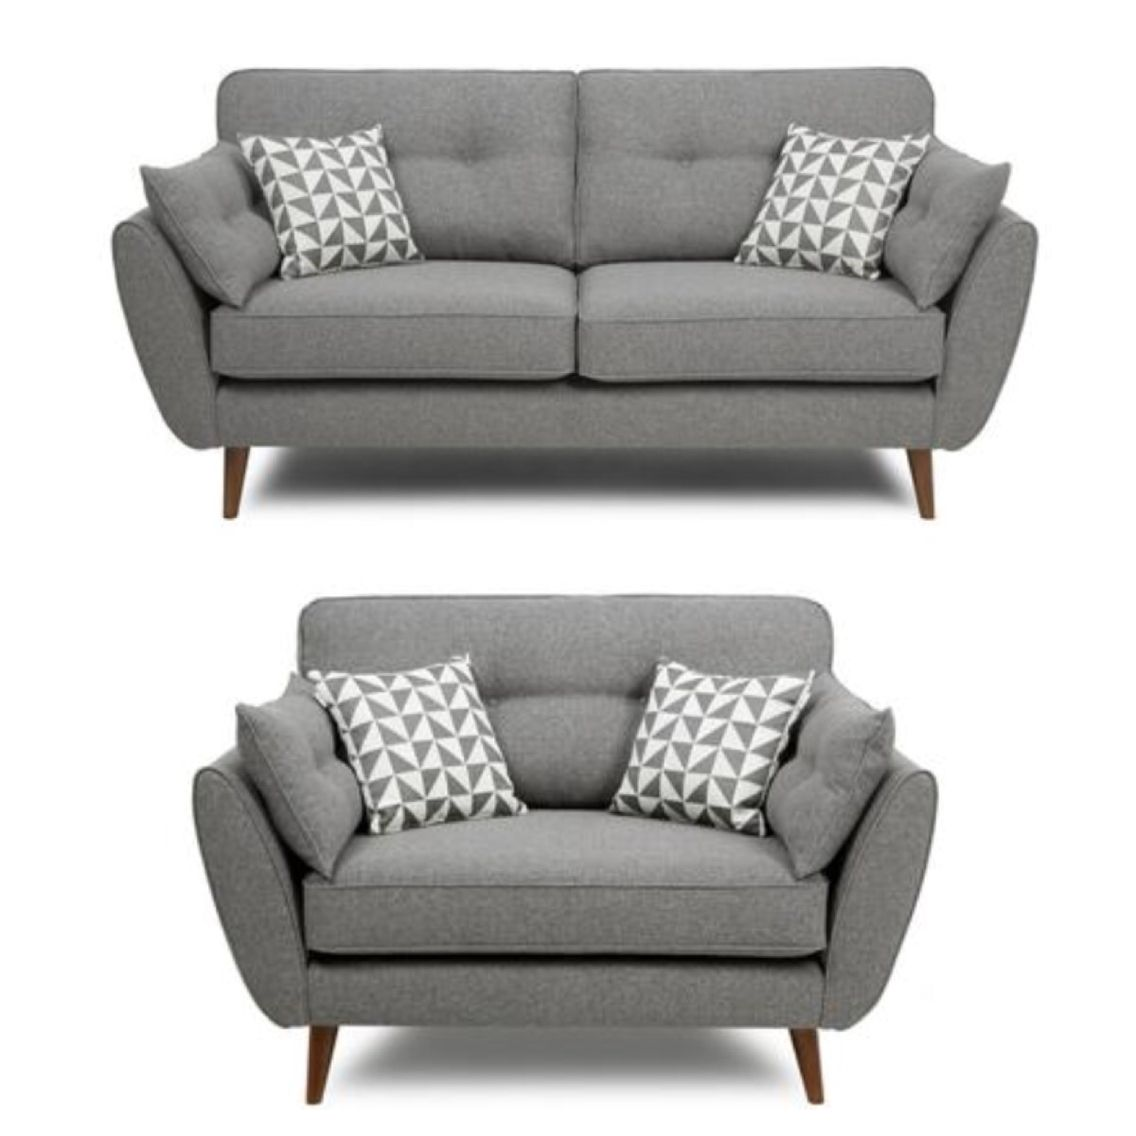 French Connection Grey Sofa And Cuddle Chair Retro Sofa Living Room Decor Gray Grey Retro Sofa